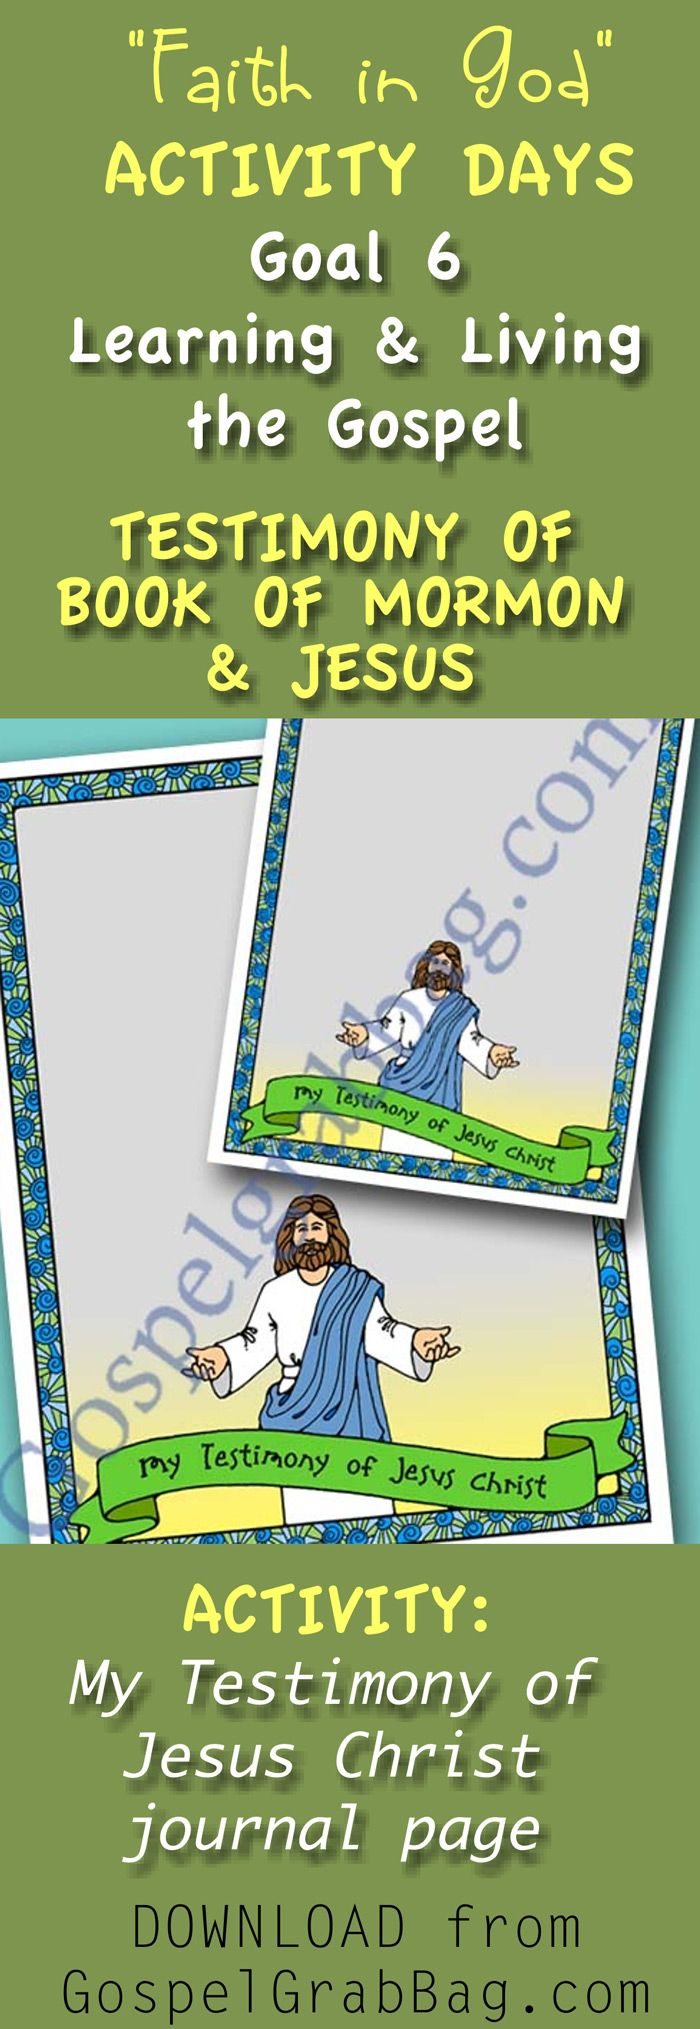 Find This Pin And More On Lds Faith In God Activity Days Ideas €� Easy Goal  Activities With Matching Invitations